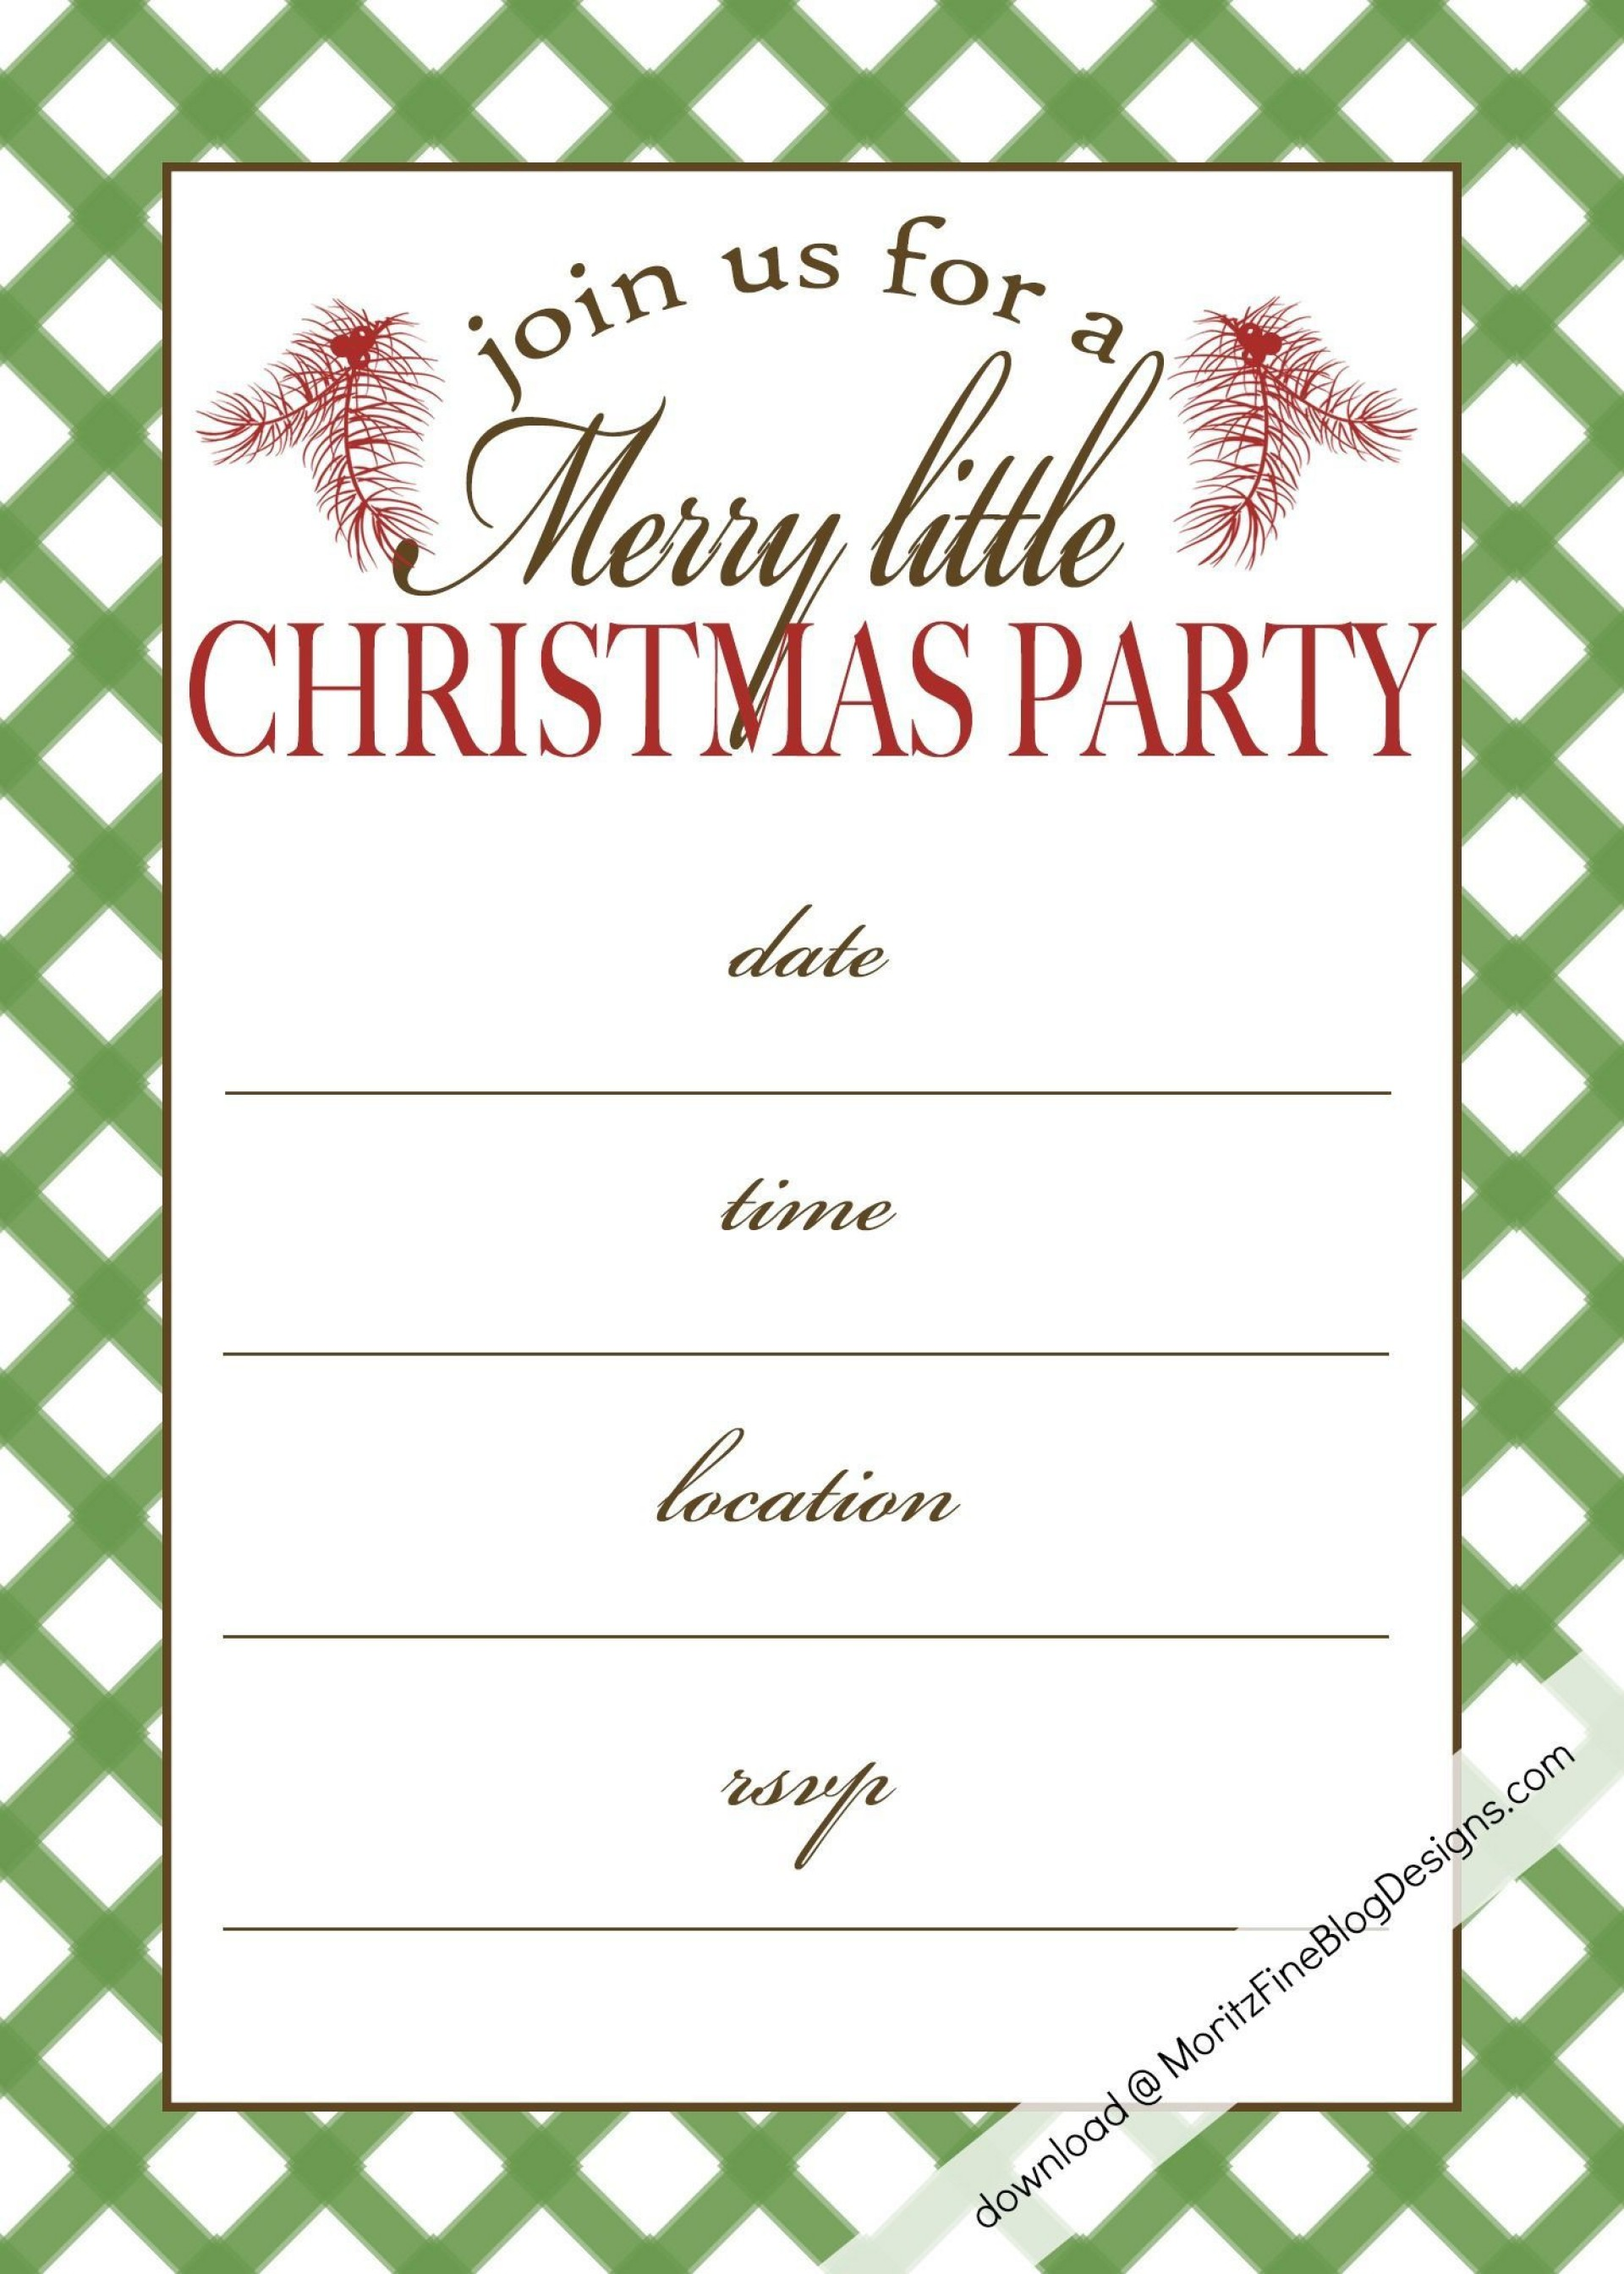 003 Unforgettable Christma Party Invite Template Highest Quality  Microsoft Word Free Download Holiday Invitation Powerpoint1920